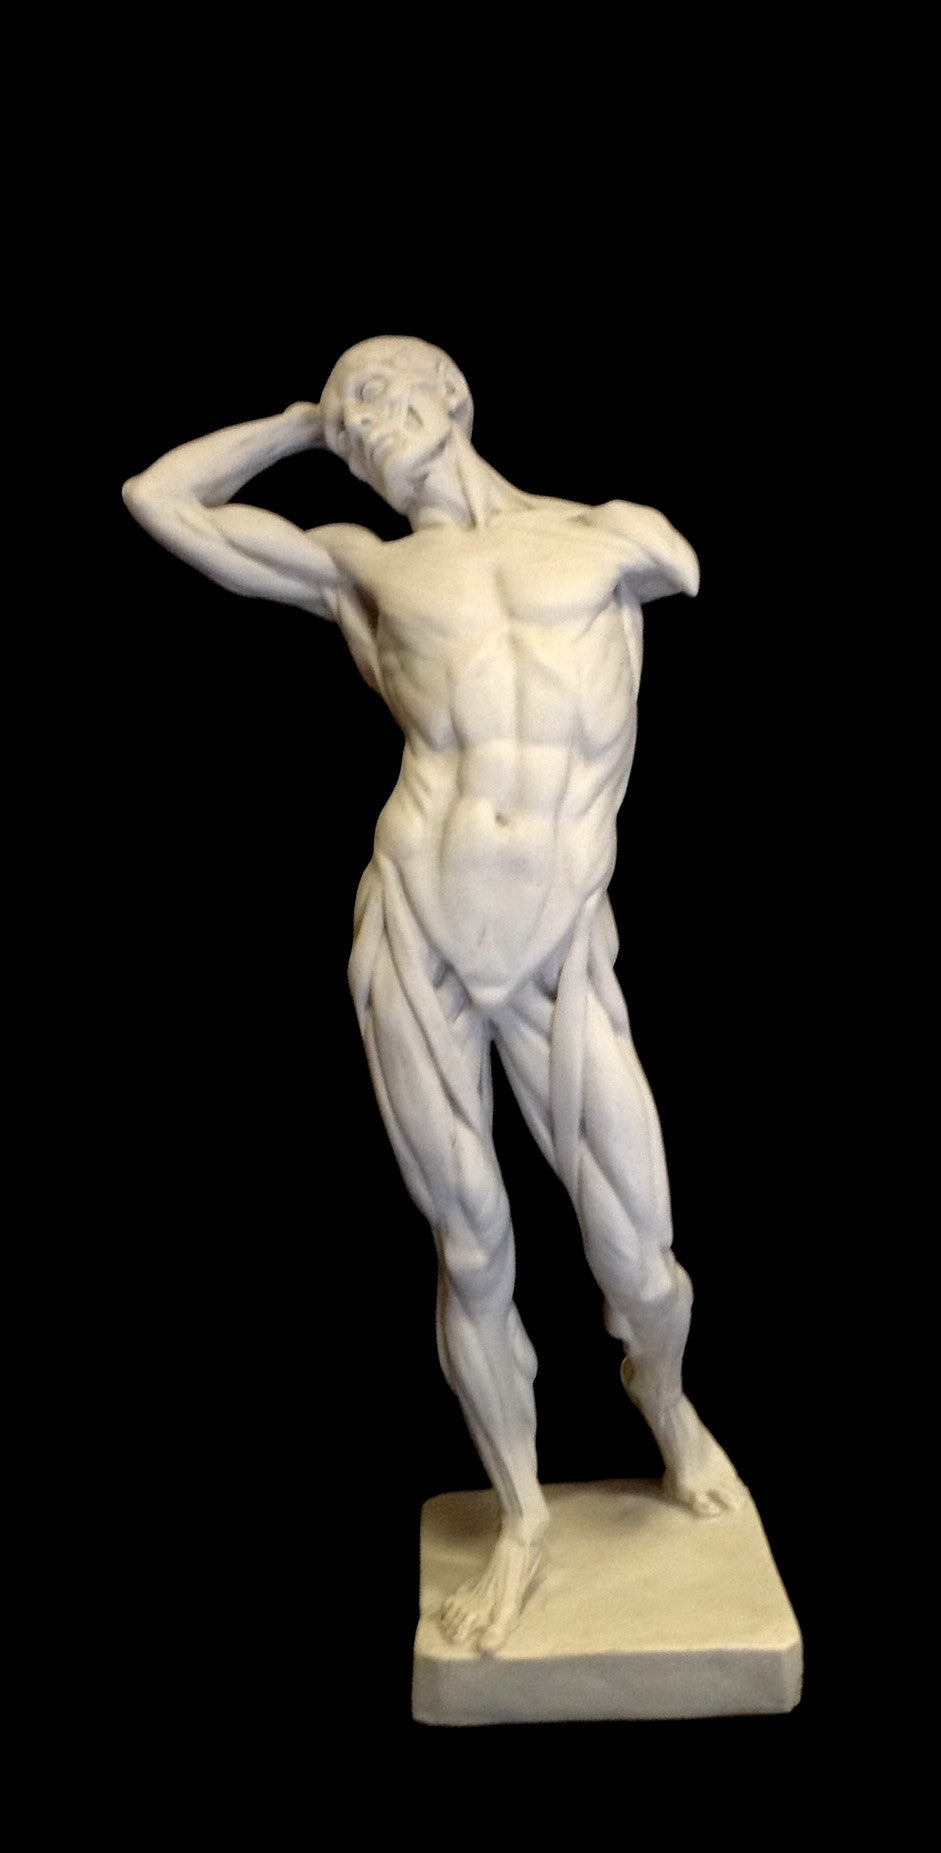 Marble Sculpture by Sculptured Arts Studio / Anatomy Of A Man